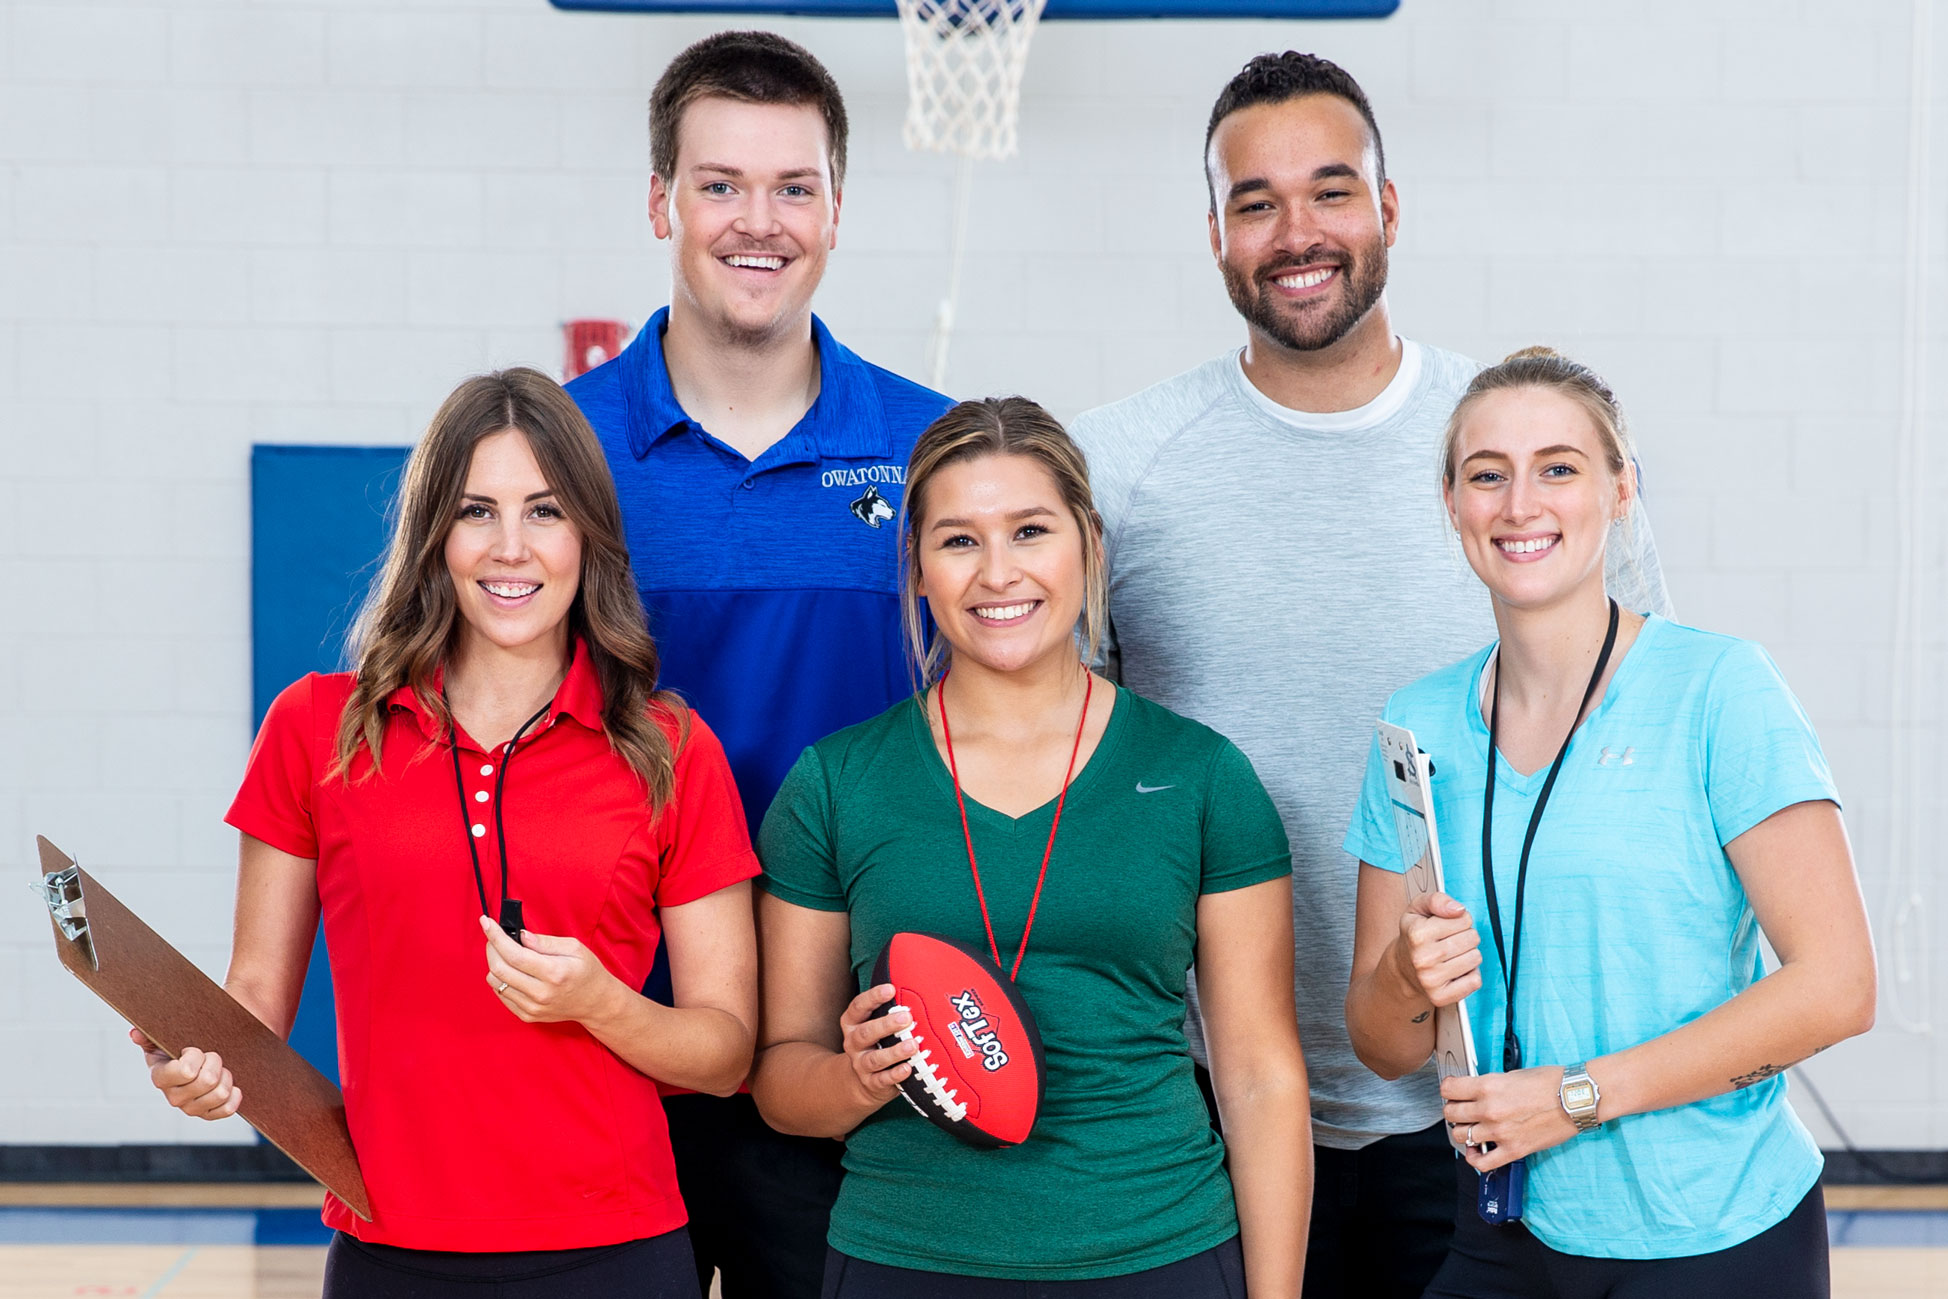 Five physical education teachers smile in a gymnasium. Two men are in the back row and three women are in the front row.